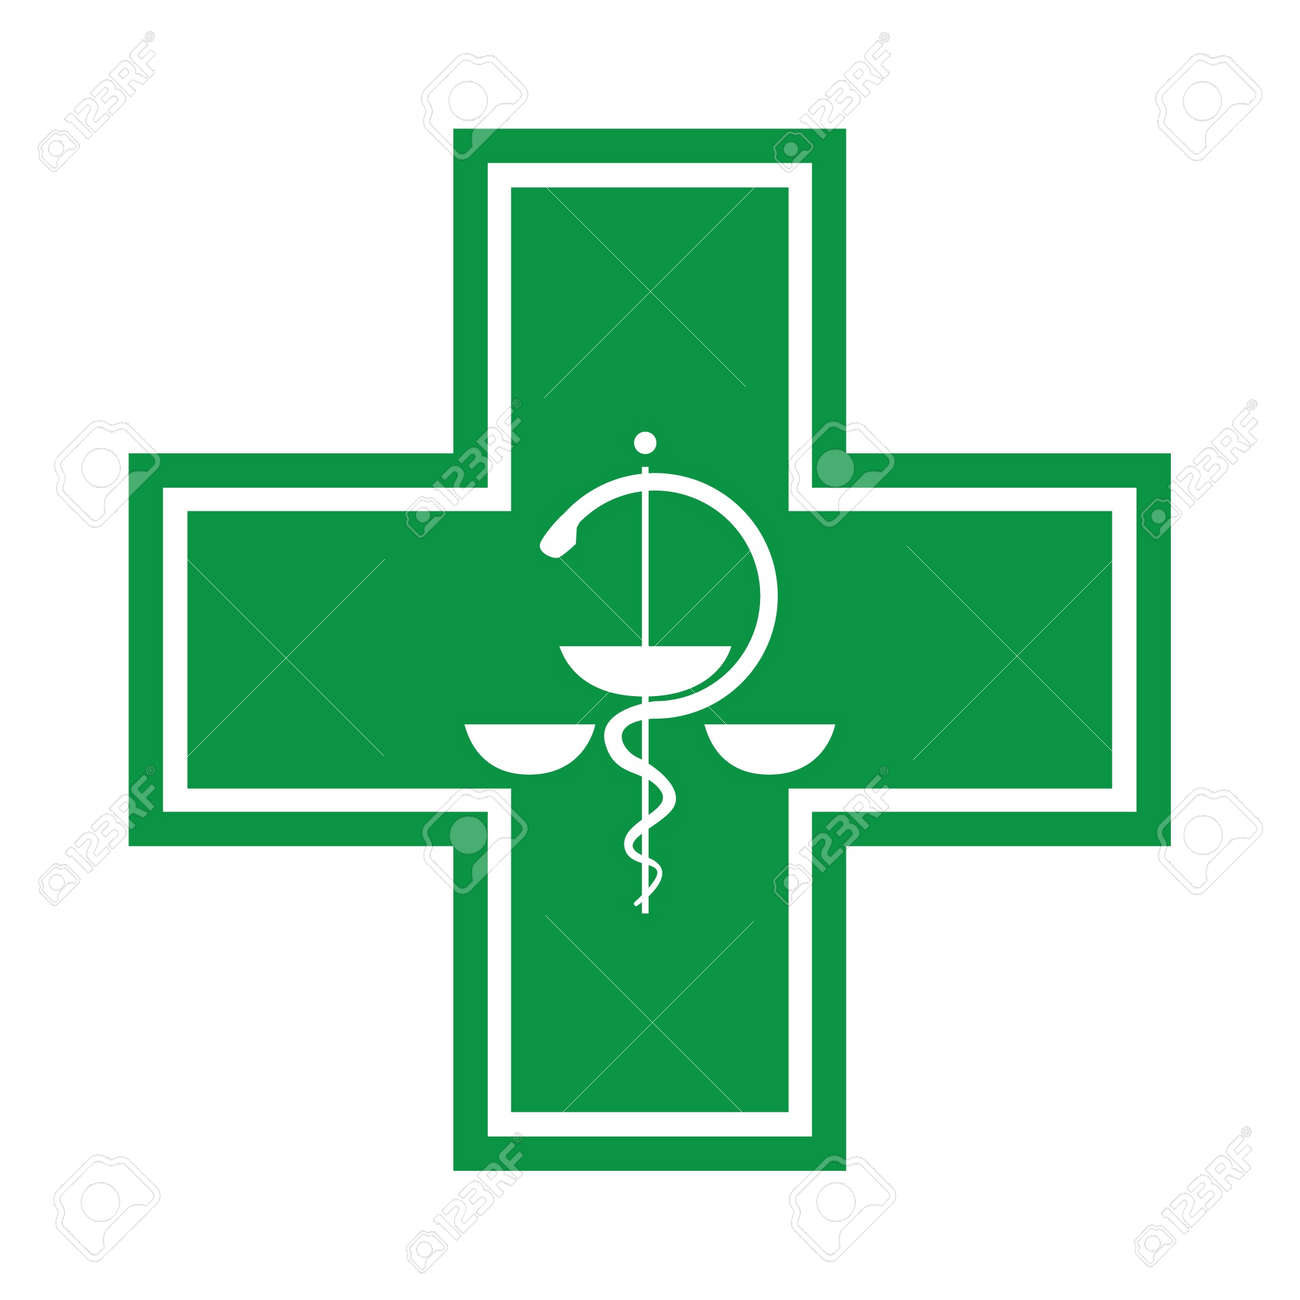 Medical cross - symbol with snake - illustration Stock Vector - 12113614